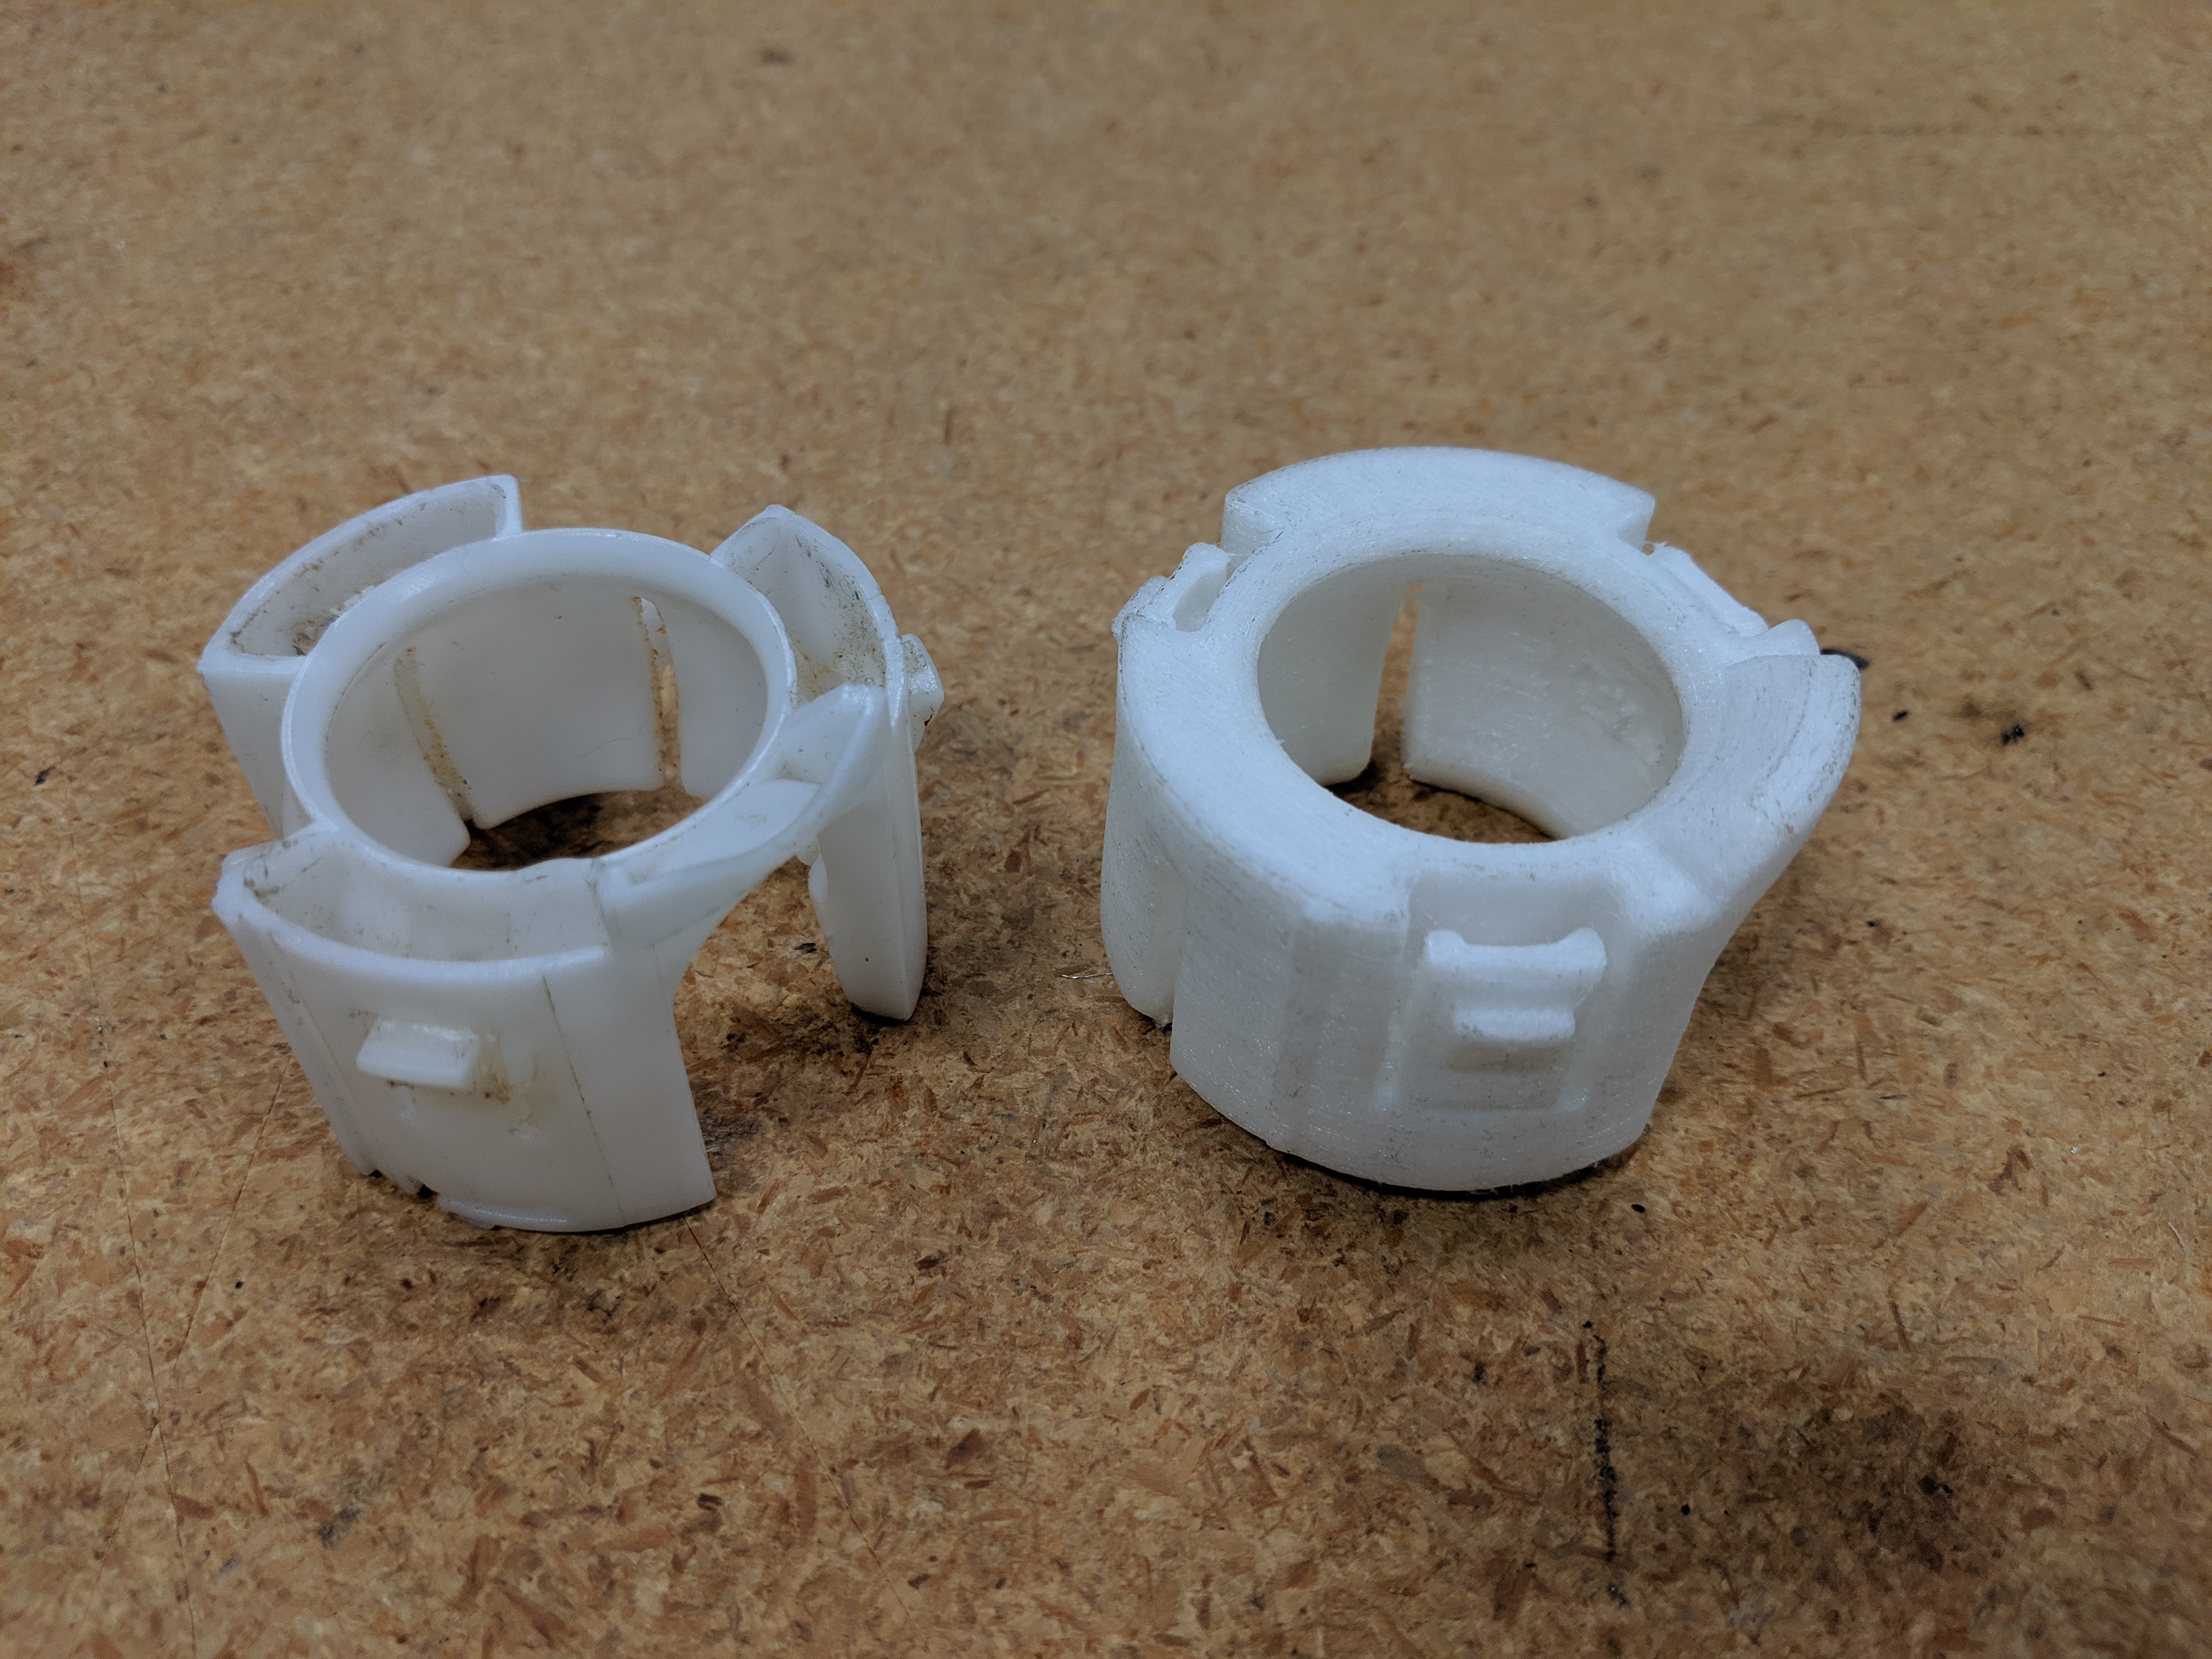 OEM and 3D printed clips side by side.